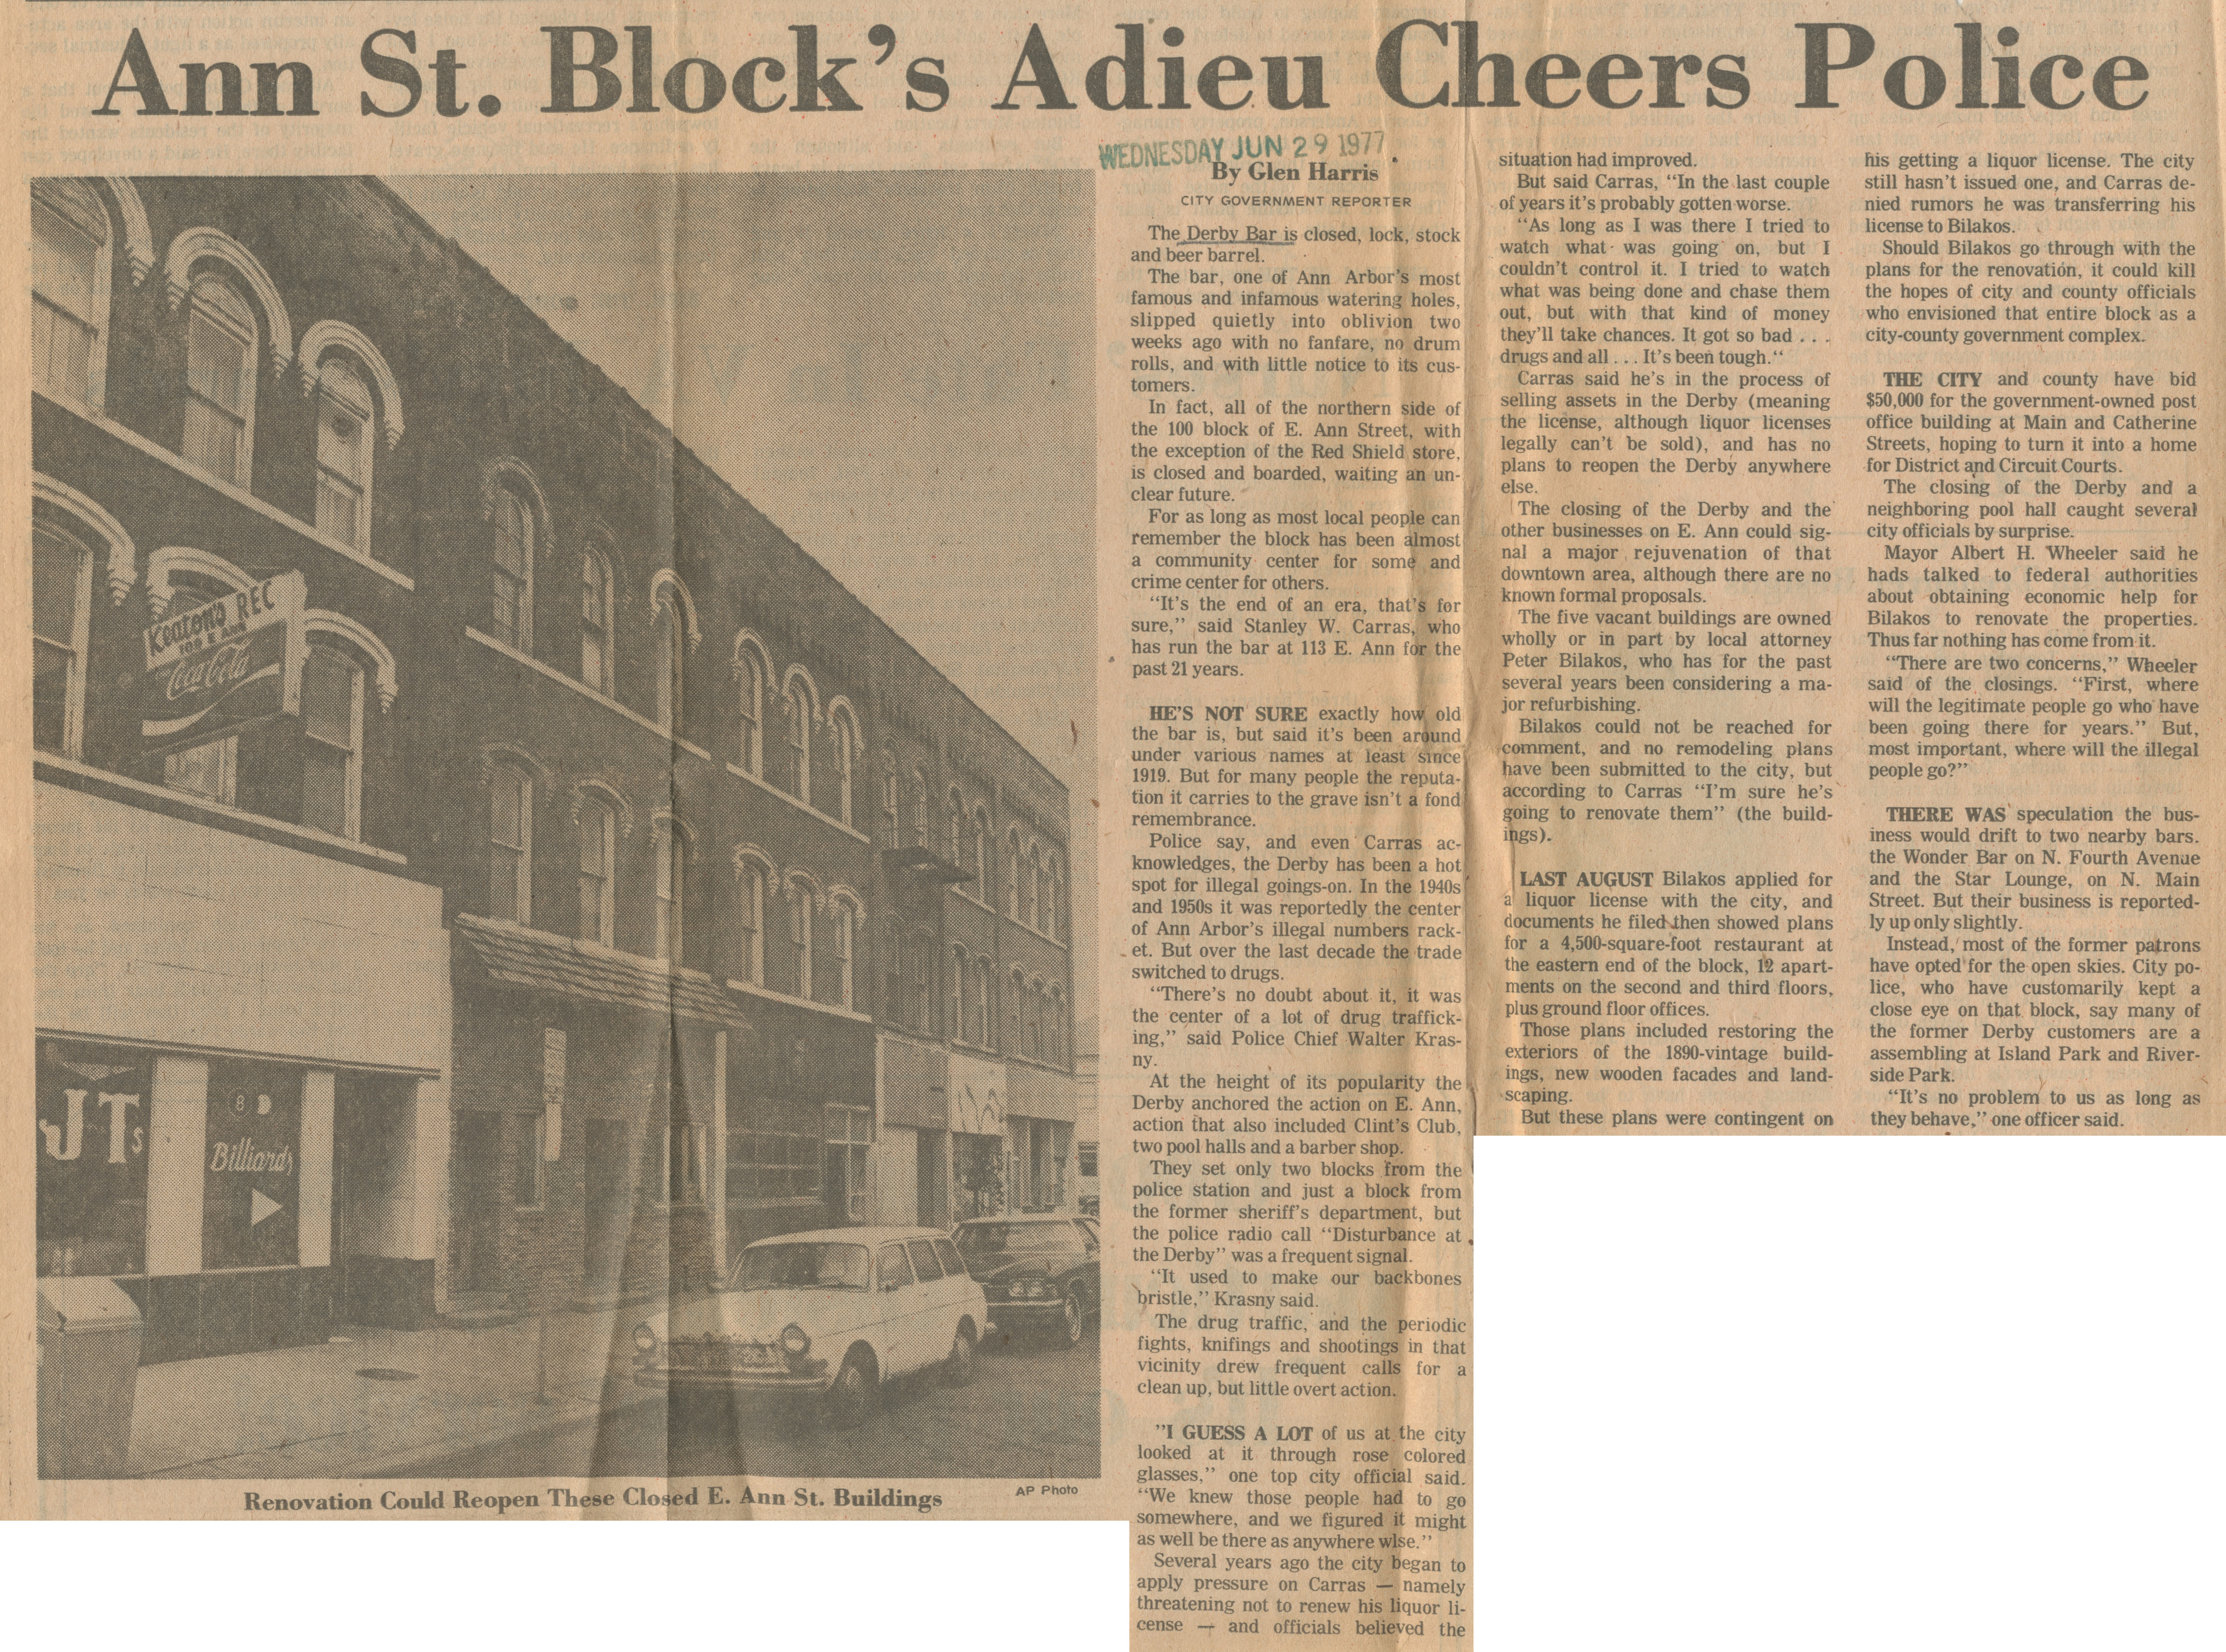 Ann St. Block's Adieu Cheers Police image